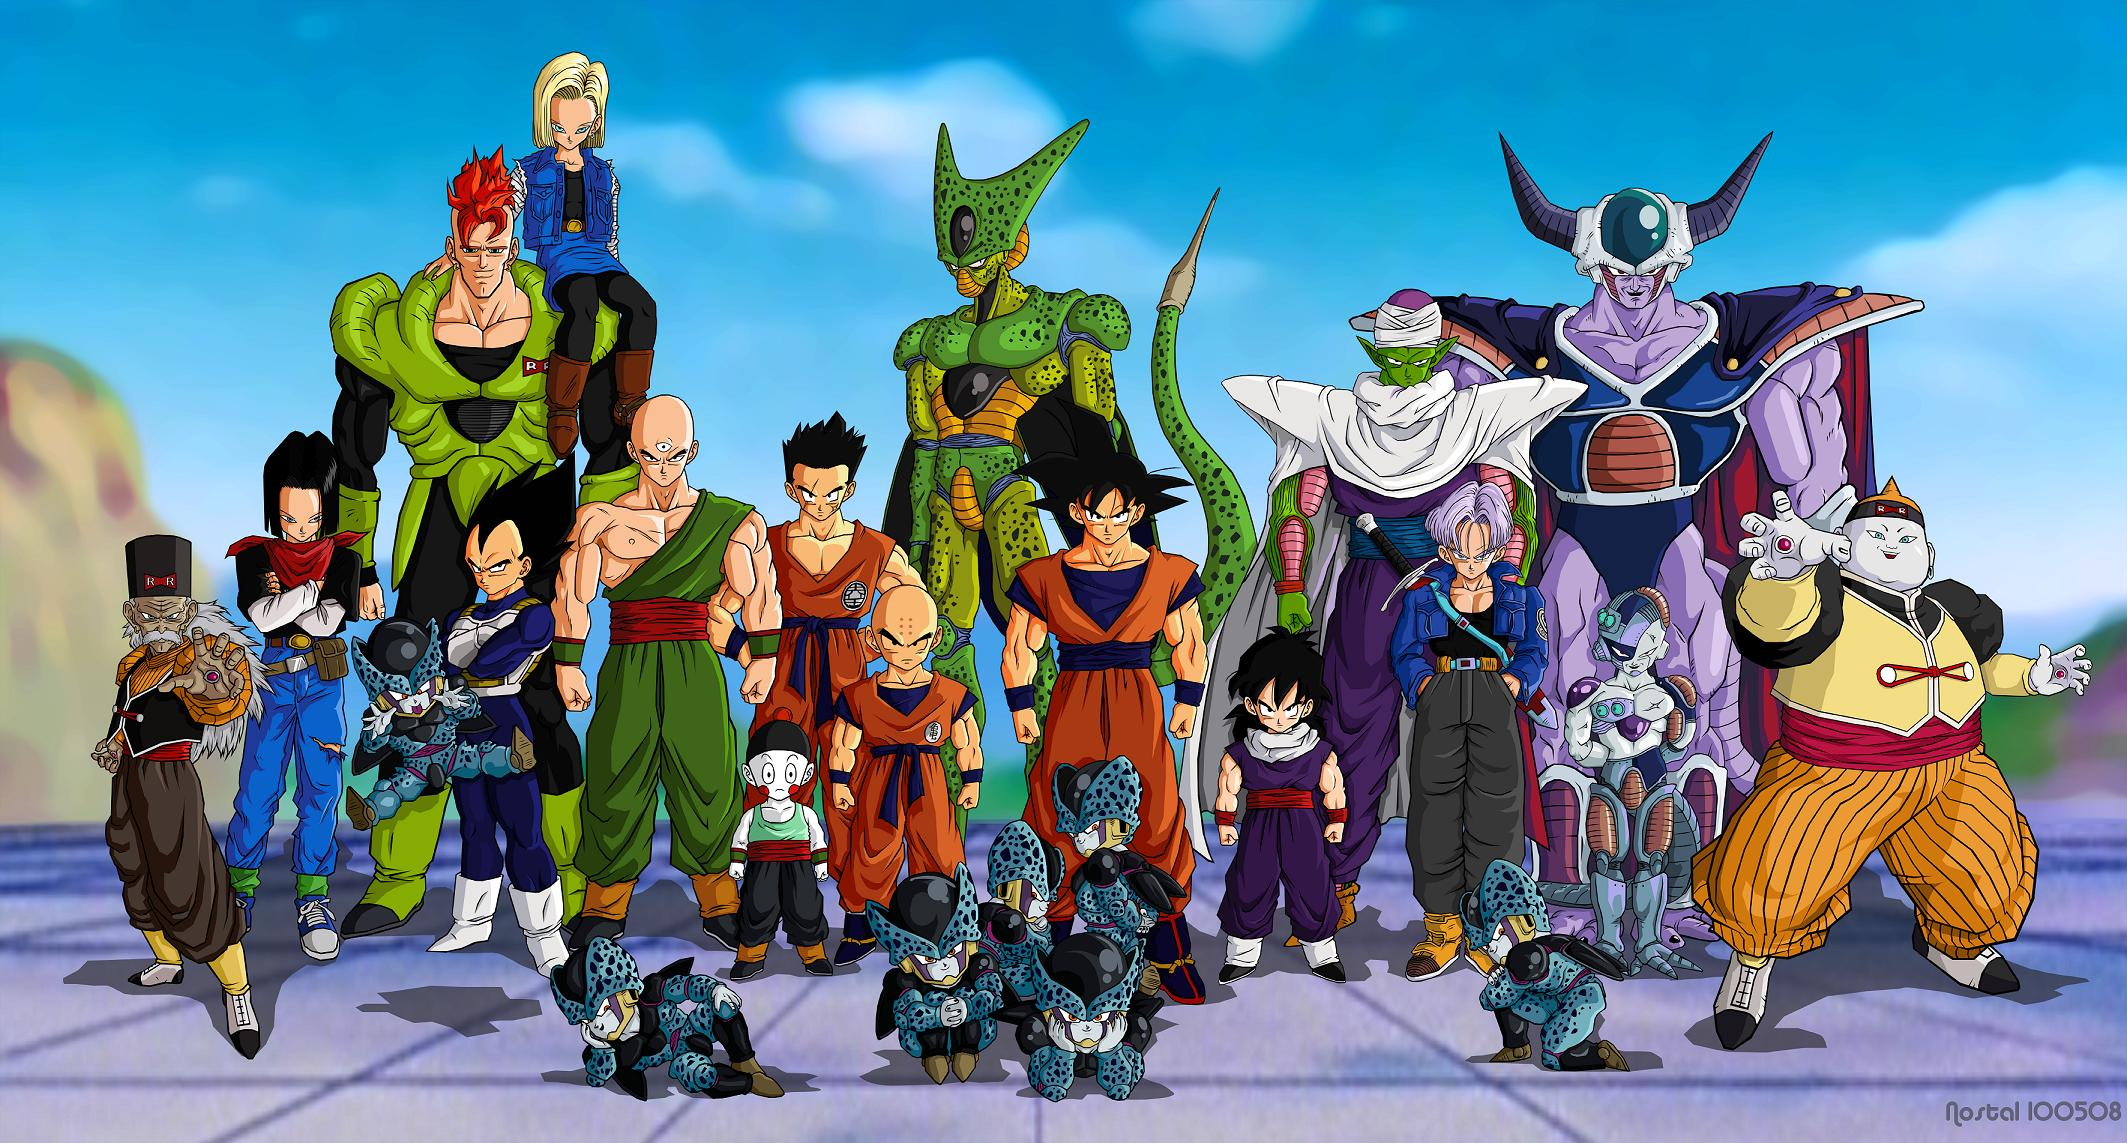 dragon ball gt wallpapers hd   ALOjamiento de IMgenes 2127x1143